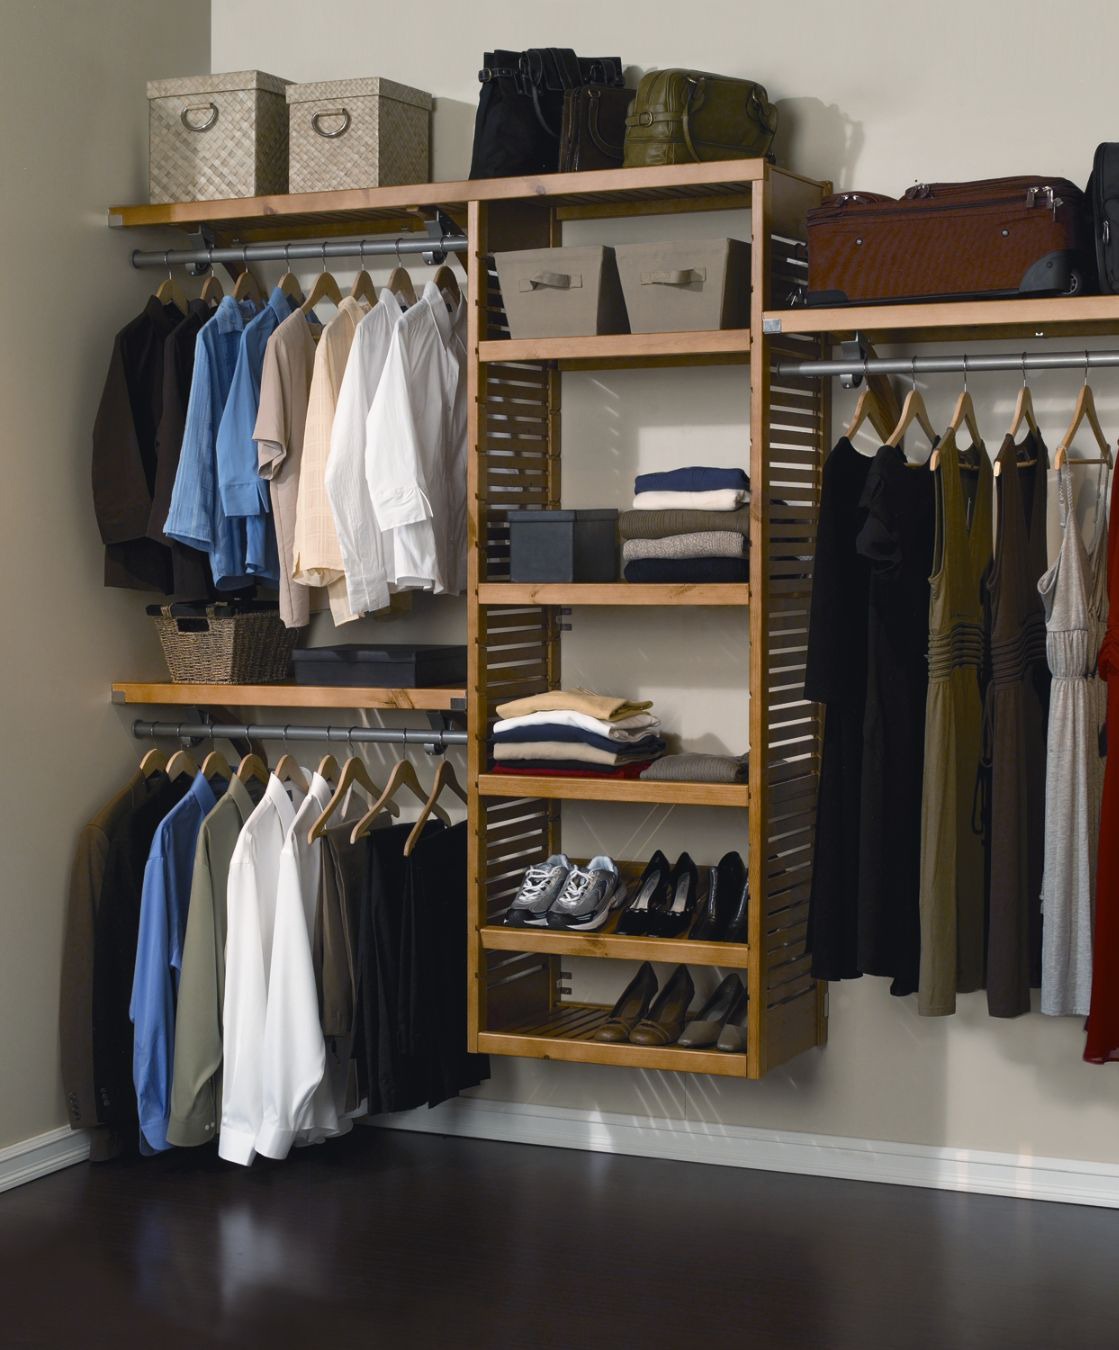 Closet Planner for Best Storage System Ideas: Closet Planner | Ikea Closet System Planner | Walk In Closet Design Layout